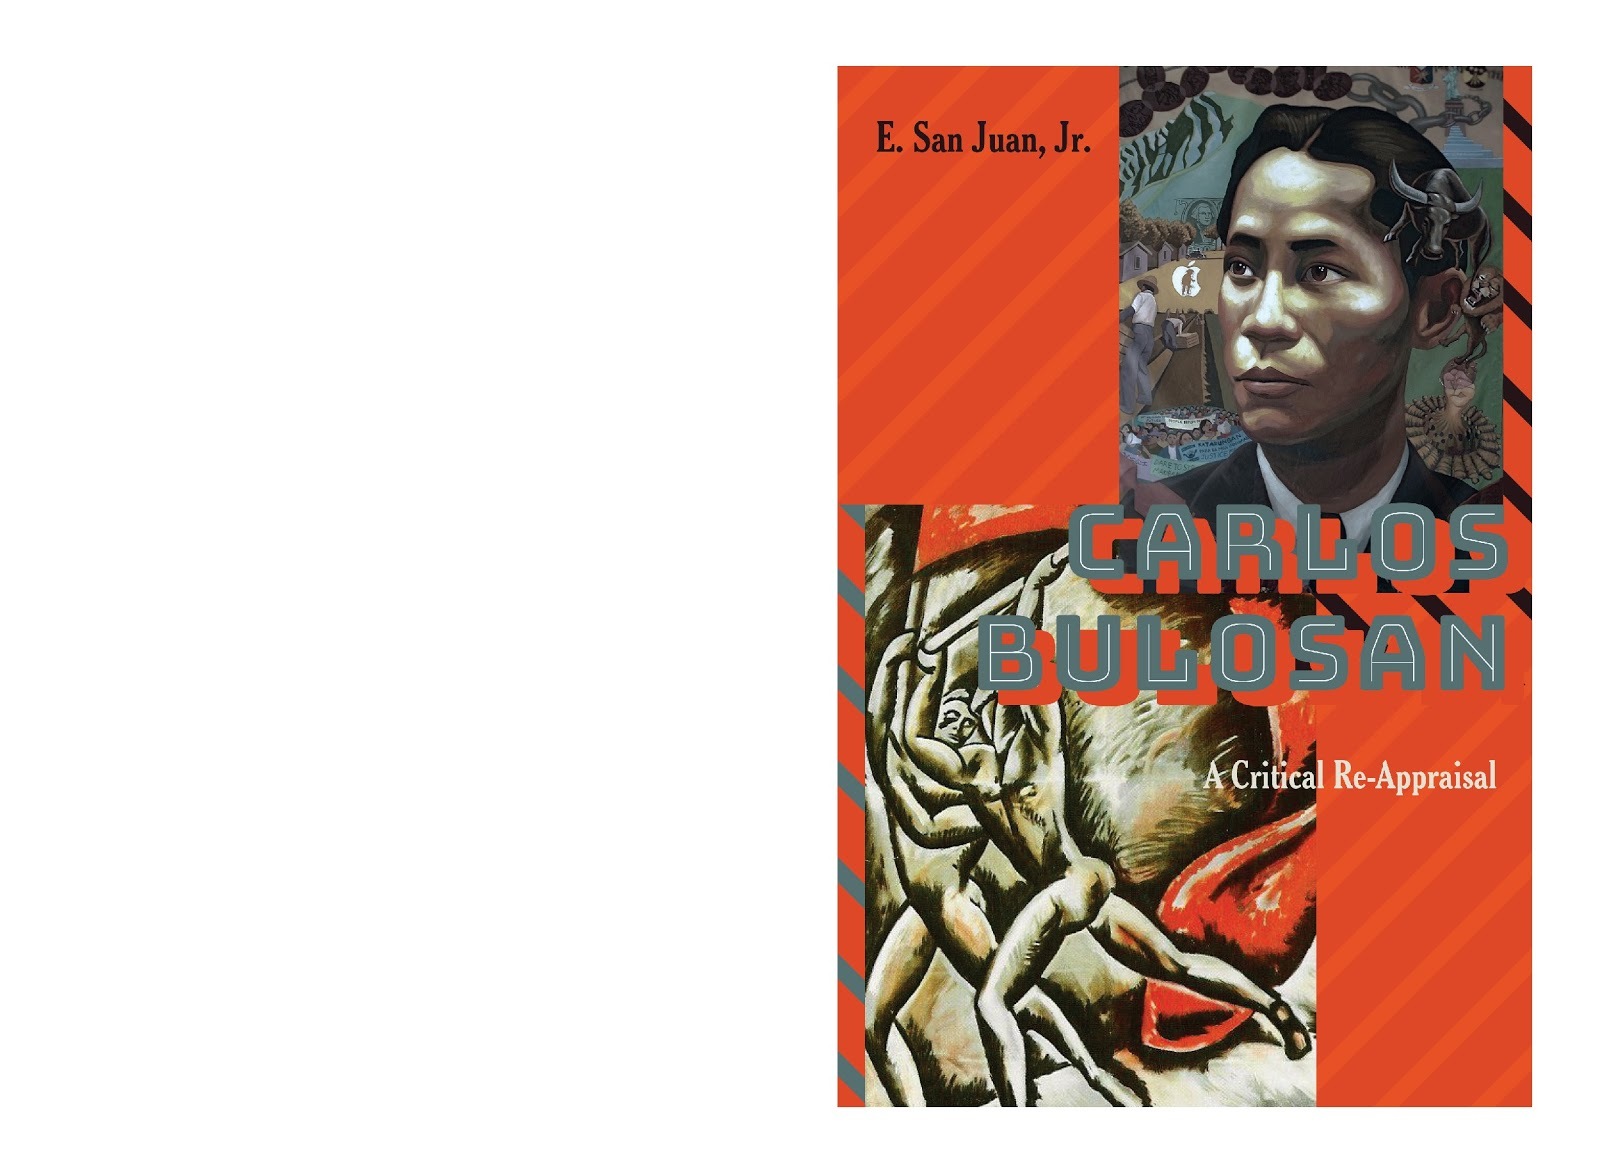 an analysis of america is in the heart by carlos bulosan Complete summary of carlos bulosan's america is in the heart enotes plot summaries cover all the significant action of america is in the heart.